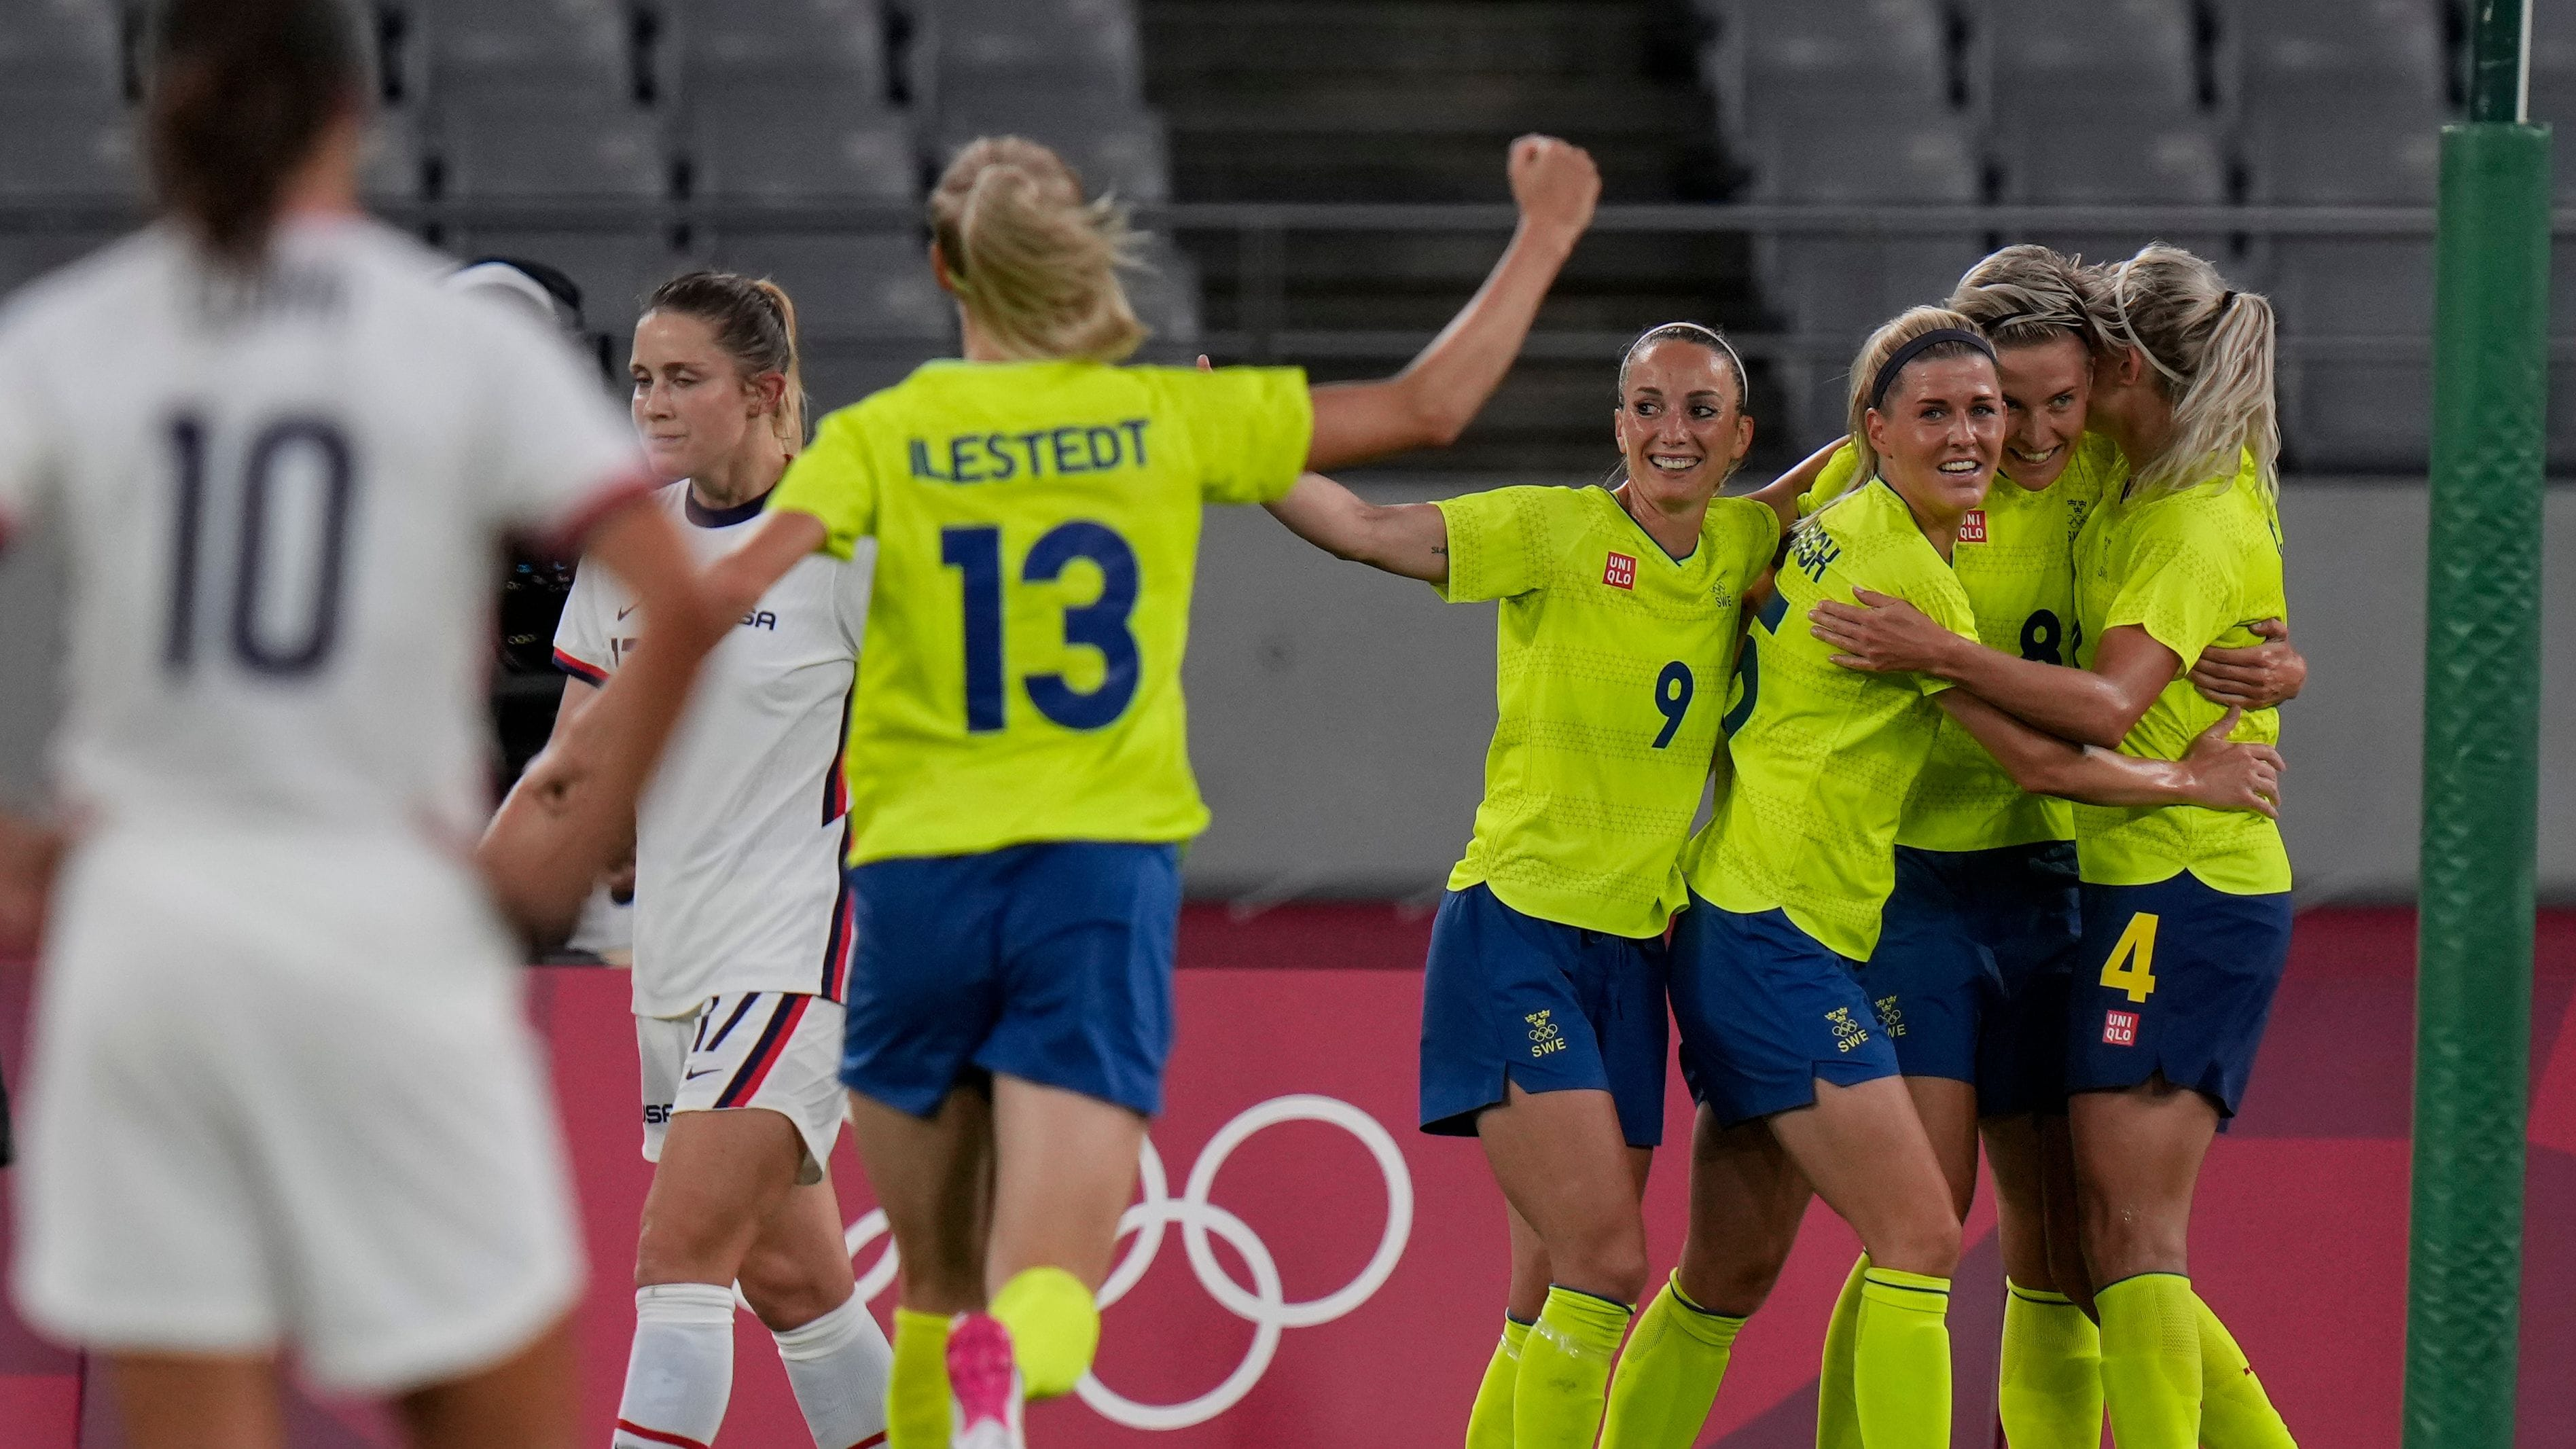 National women's soccer team position: U S Women S National Team Trounced By Sweden 3 0 In Olympic Stunner The Washington Post